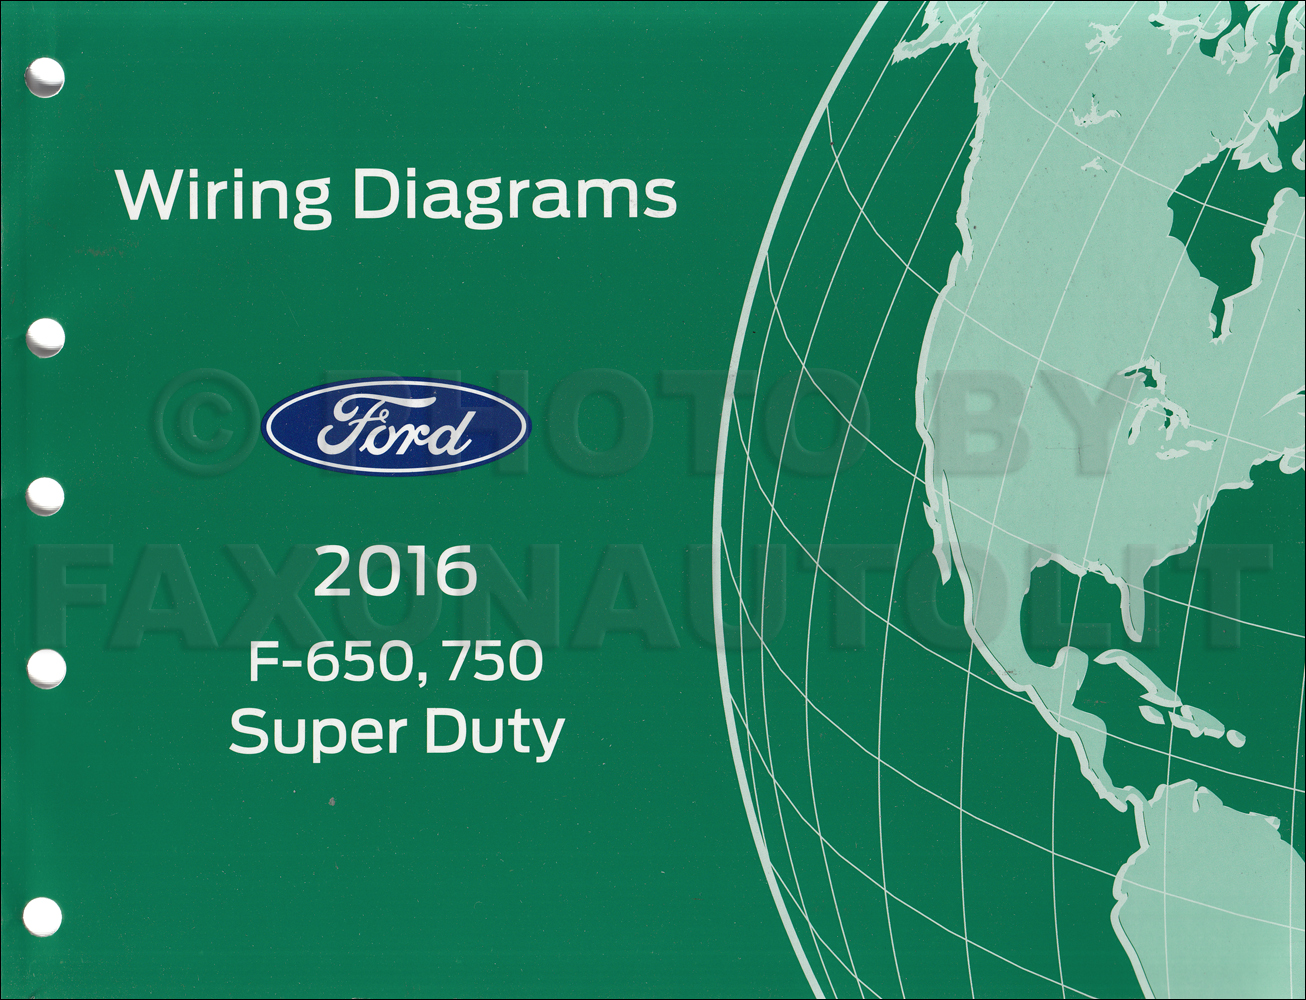 F750 Wiring Diagram Starting Know About Ford F600 Truck Diagrams 2016 F 650 And 750 Super Duty Manual Rh Faxonautoliterature Com